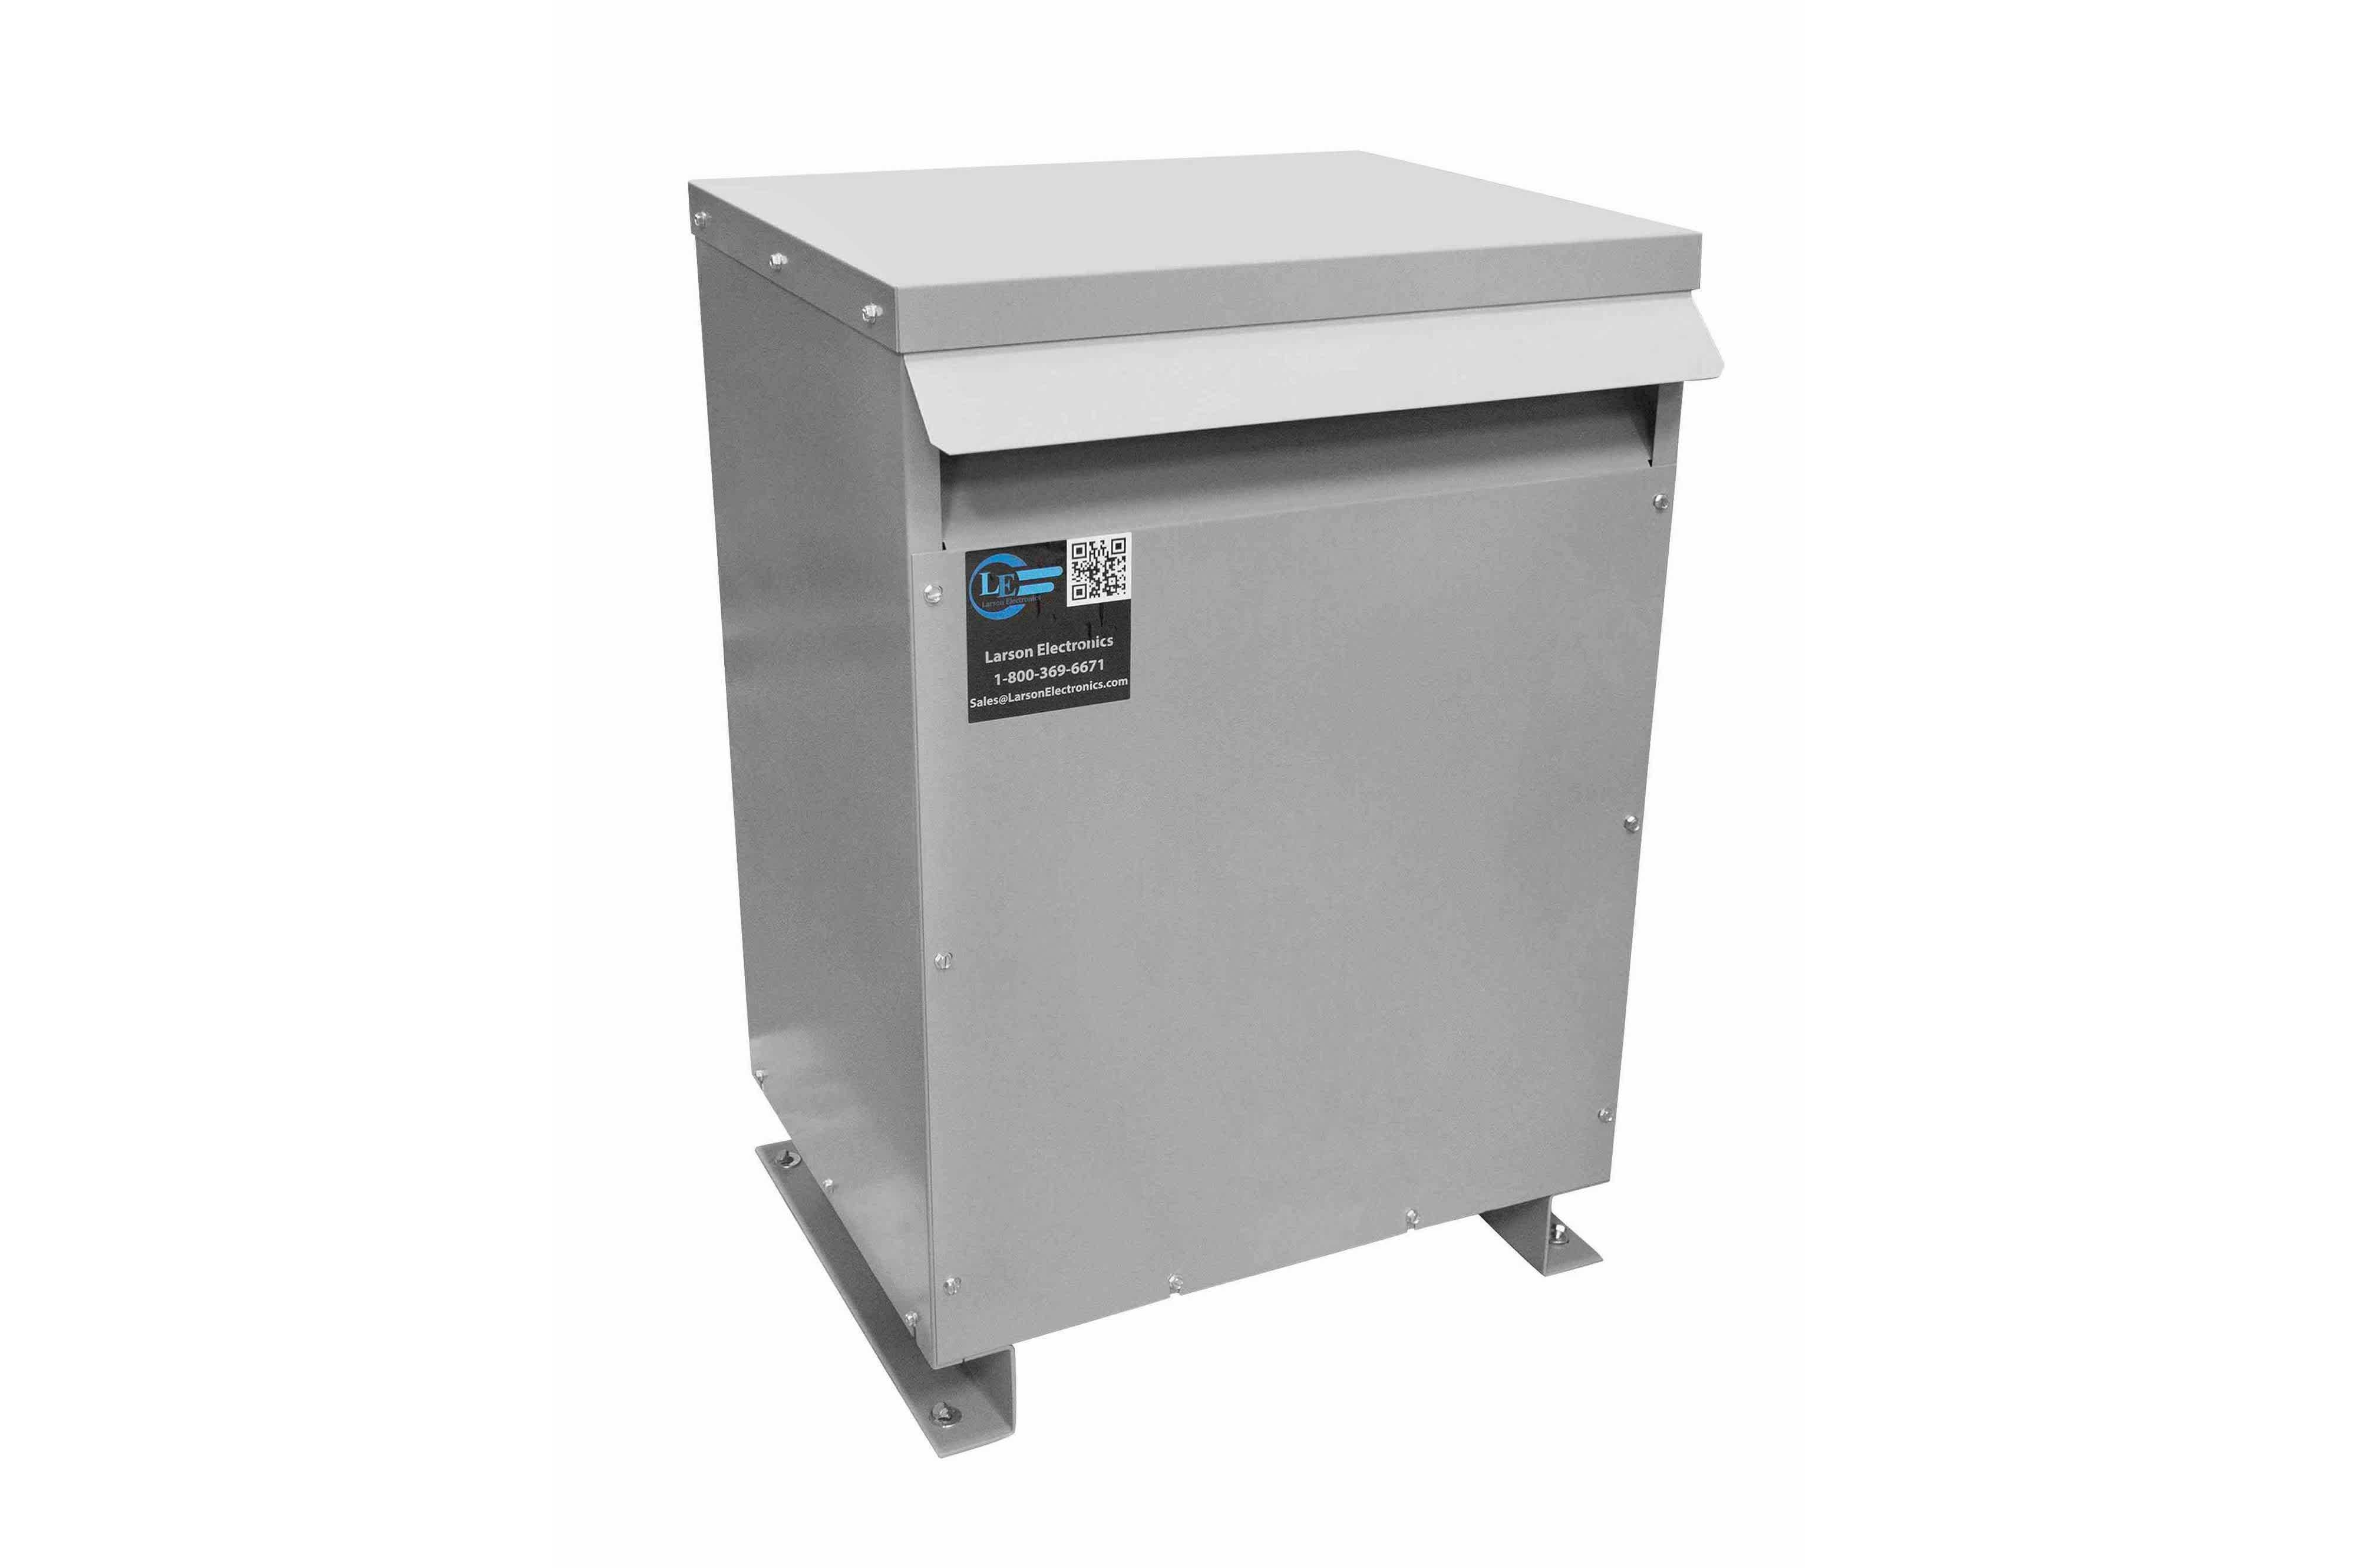 47.5 kVA 3PH Isolation Transformer, 415V Delta Primary, 208V Delta Secondary, N3R, Ventilated, 60 Hz